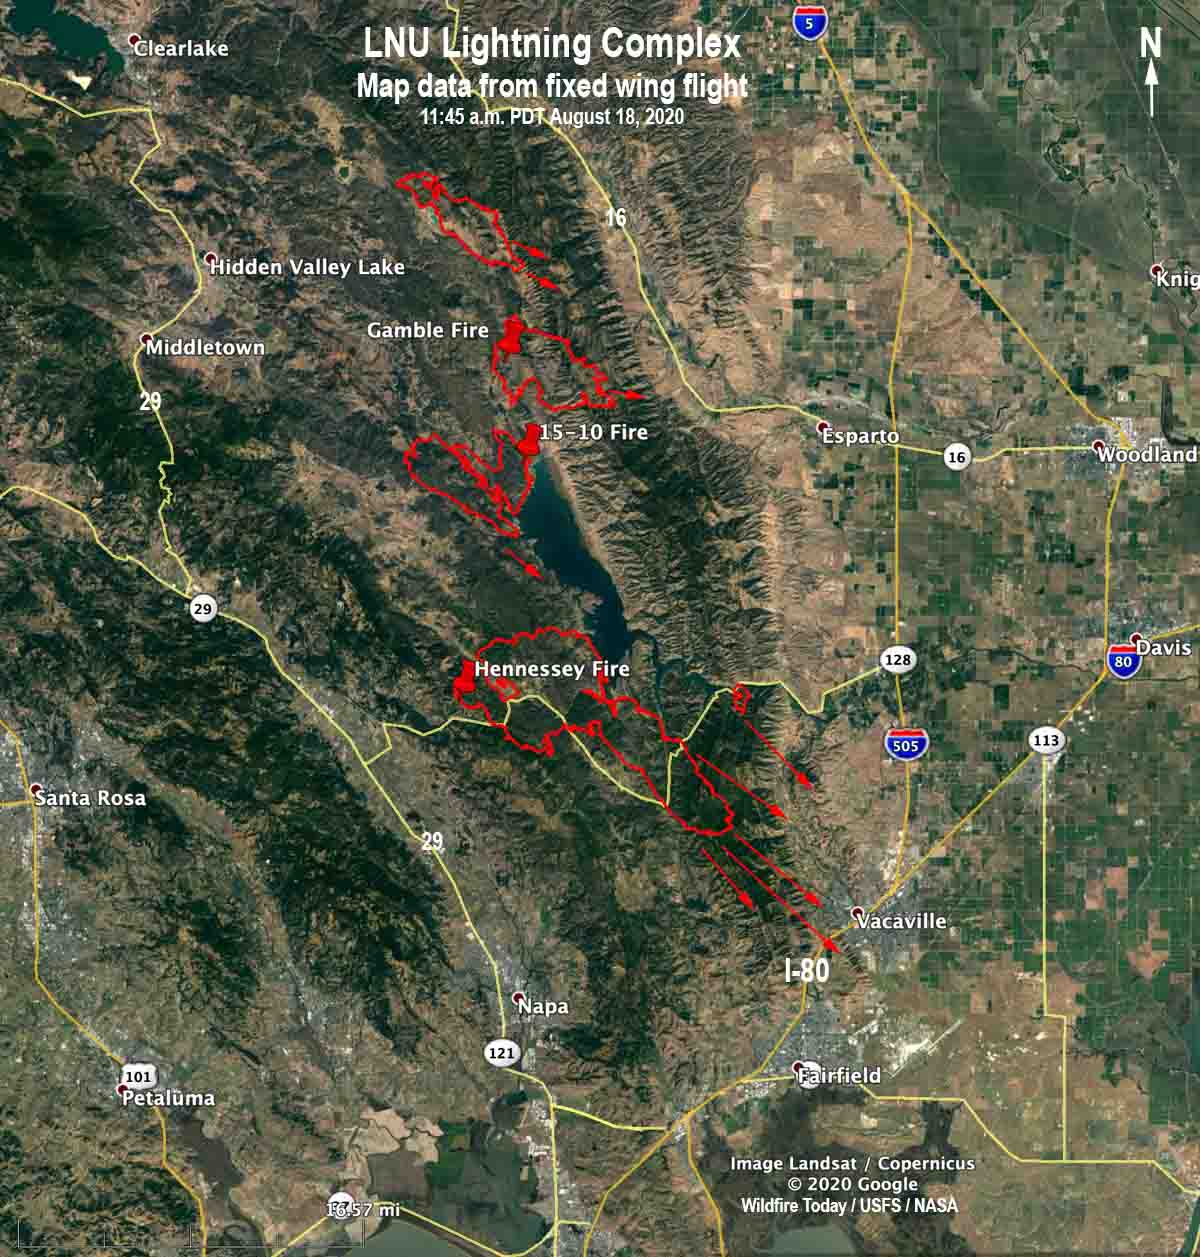 map fire Hennessey LNU Complex 1145 pm PDT August 18, 2020